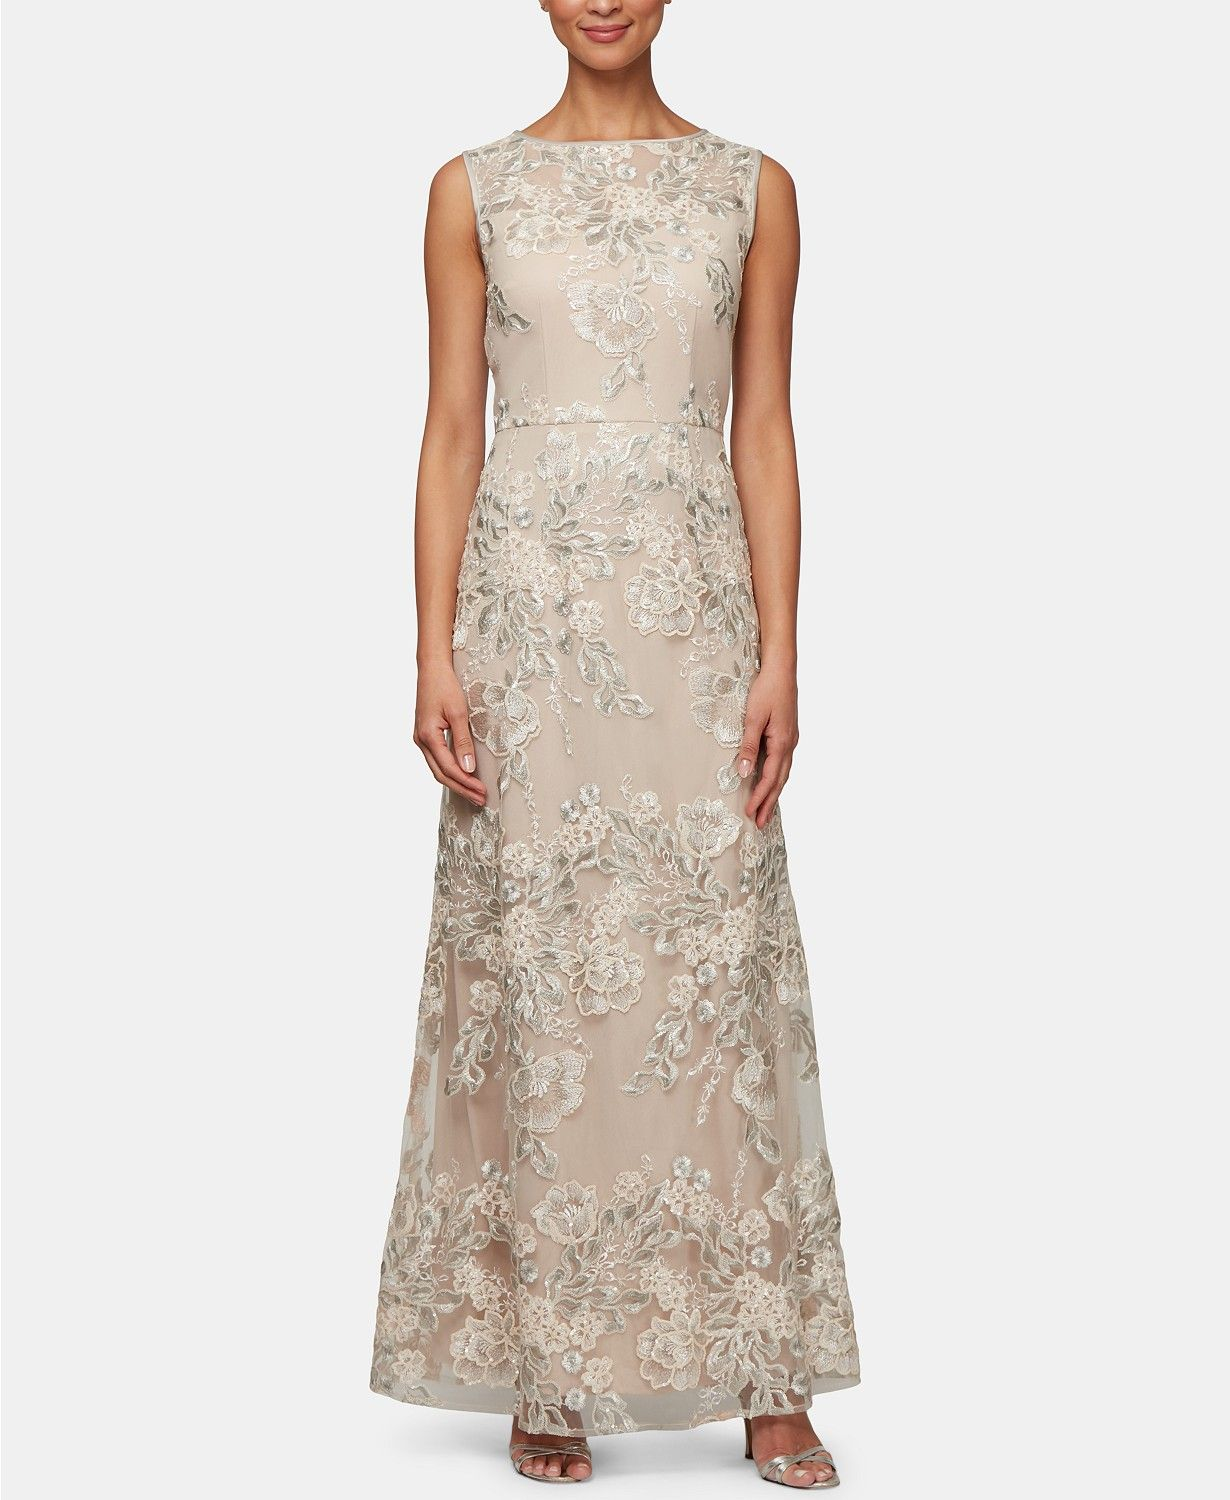 924f077fc3 Alex Evenings Petite Embroidered Mesh Gown   Reviews - Dresses - Petites -  Macy s